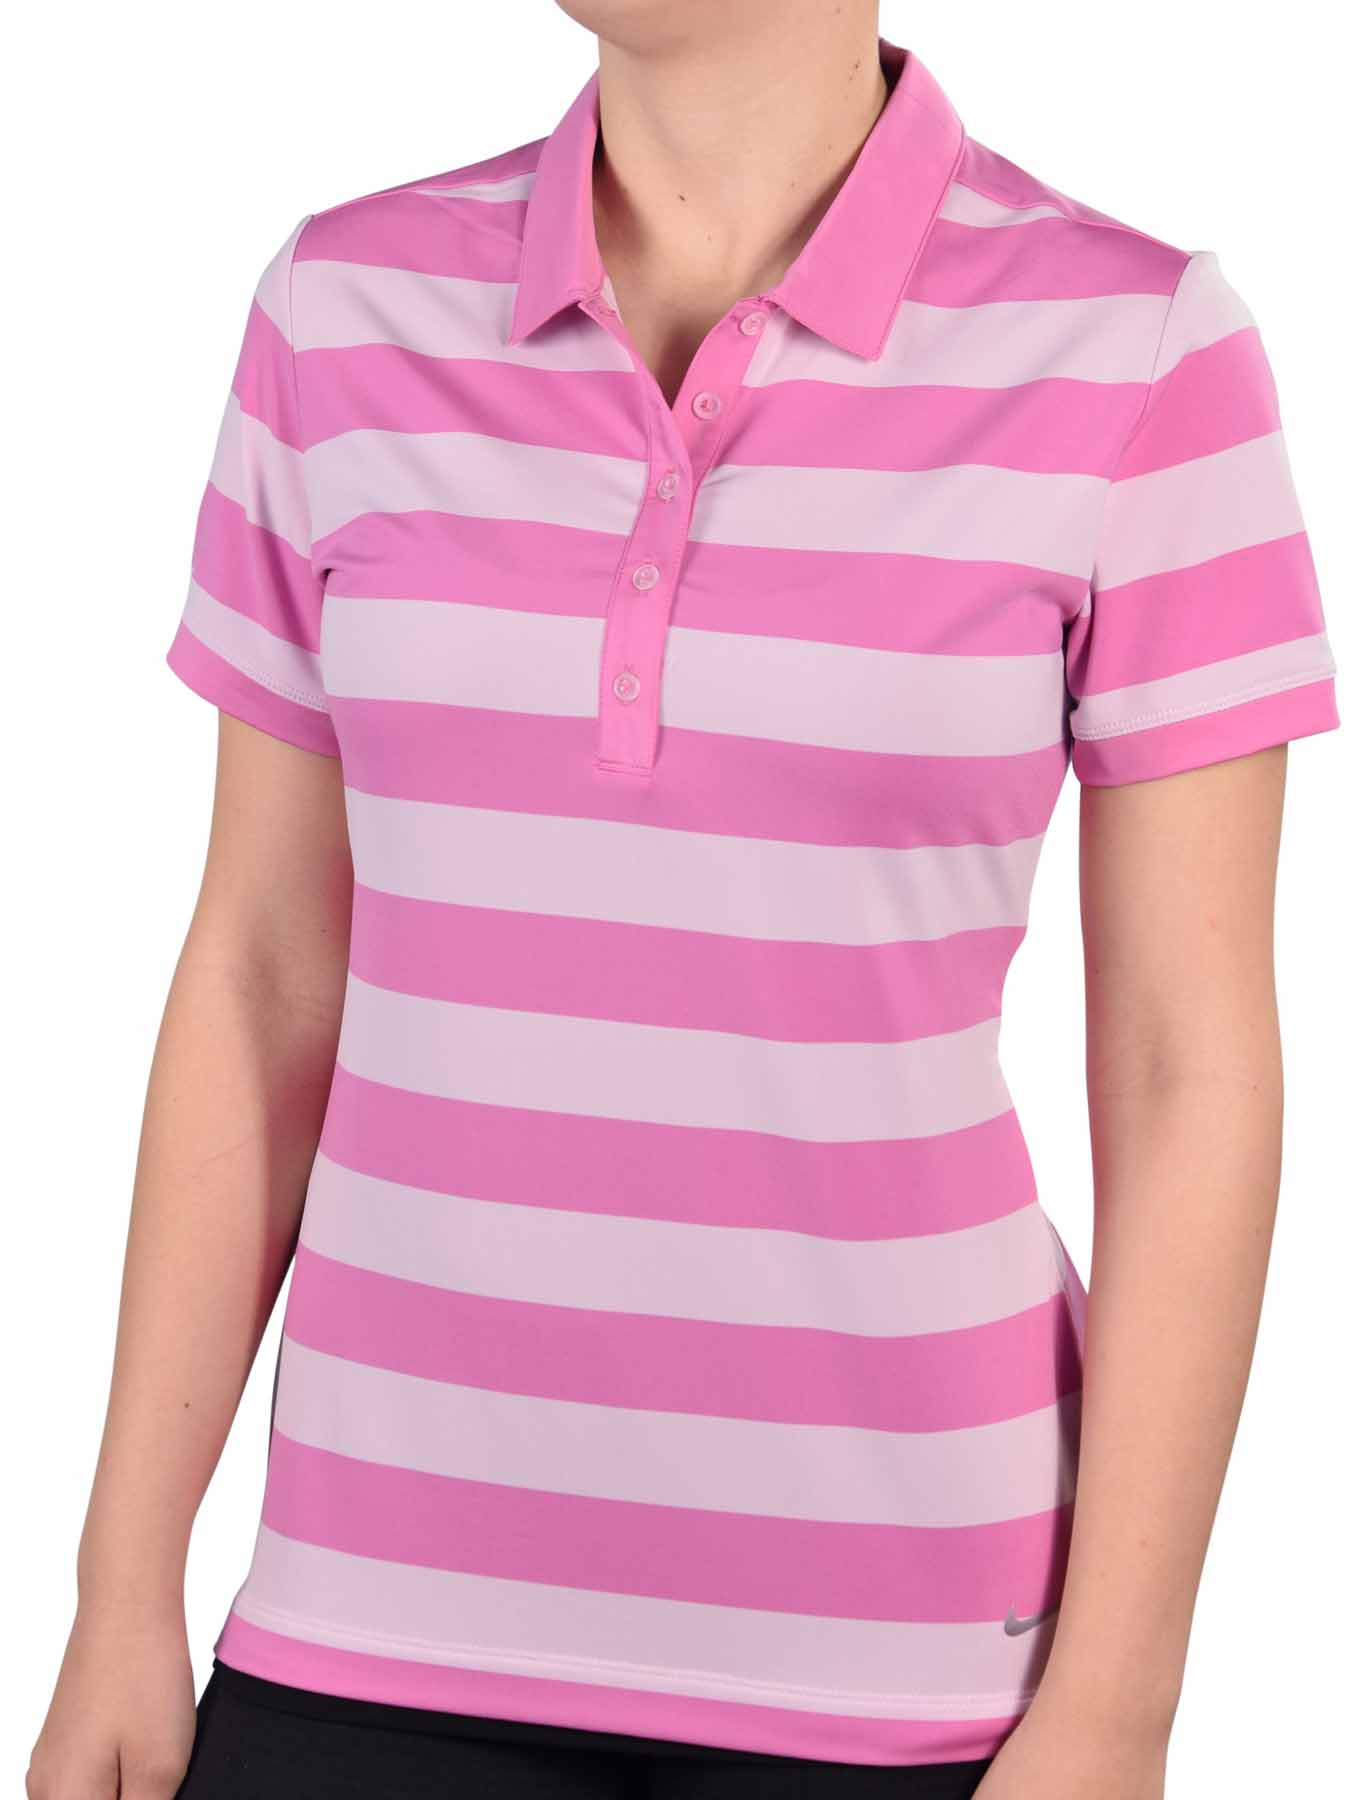 Nike women 39 s dri fit bold stripe golf polo shirt for Women s dri fit golf shirts